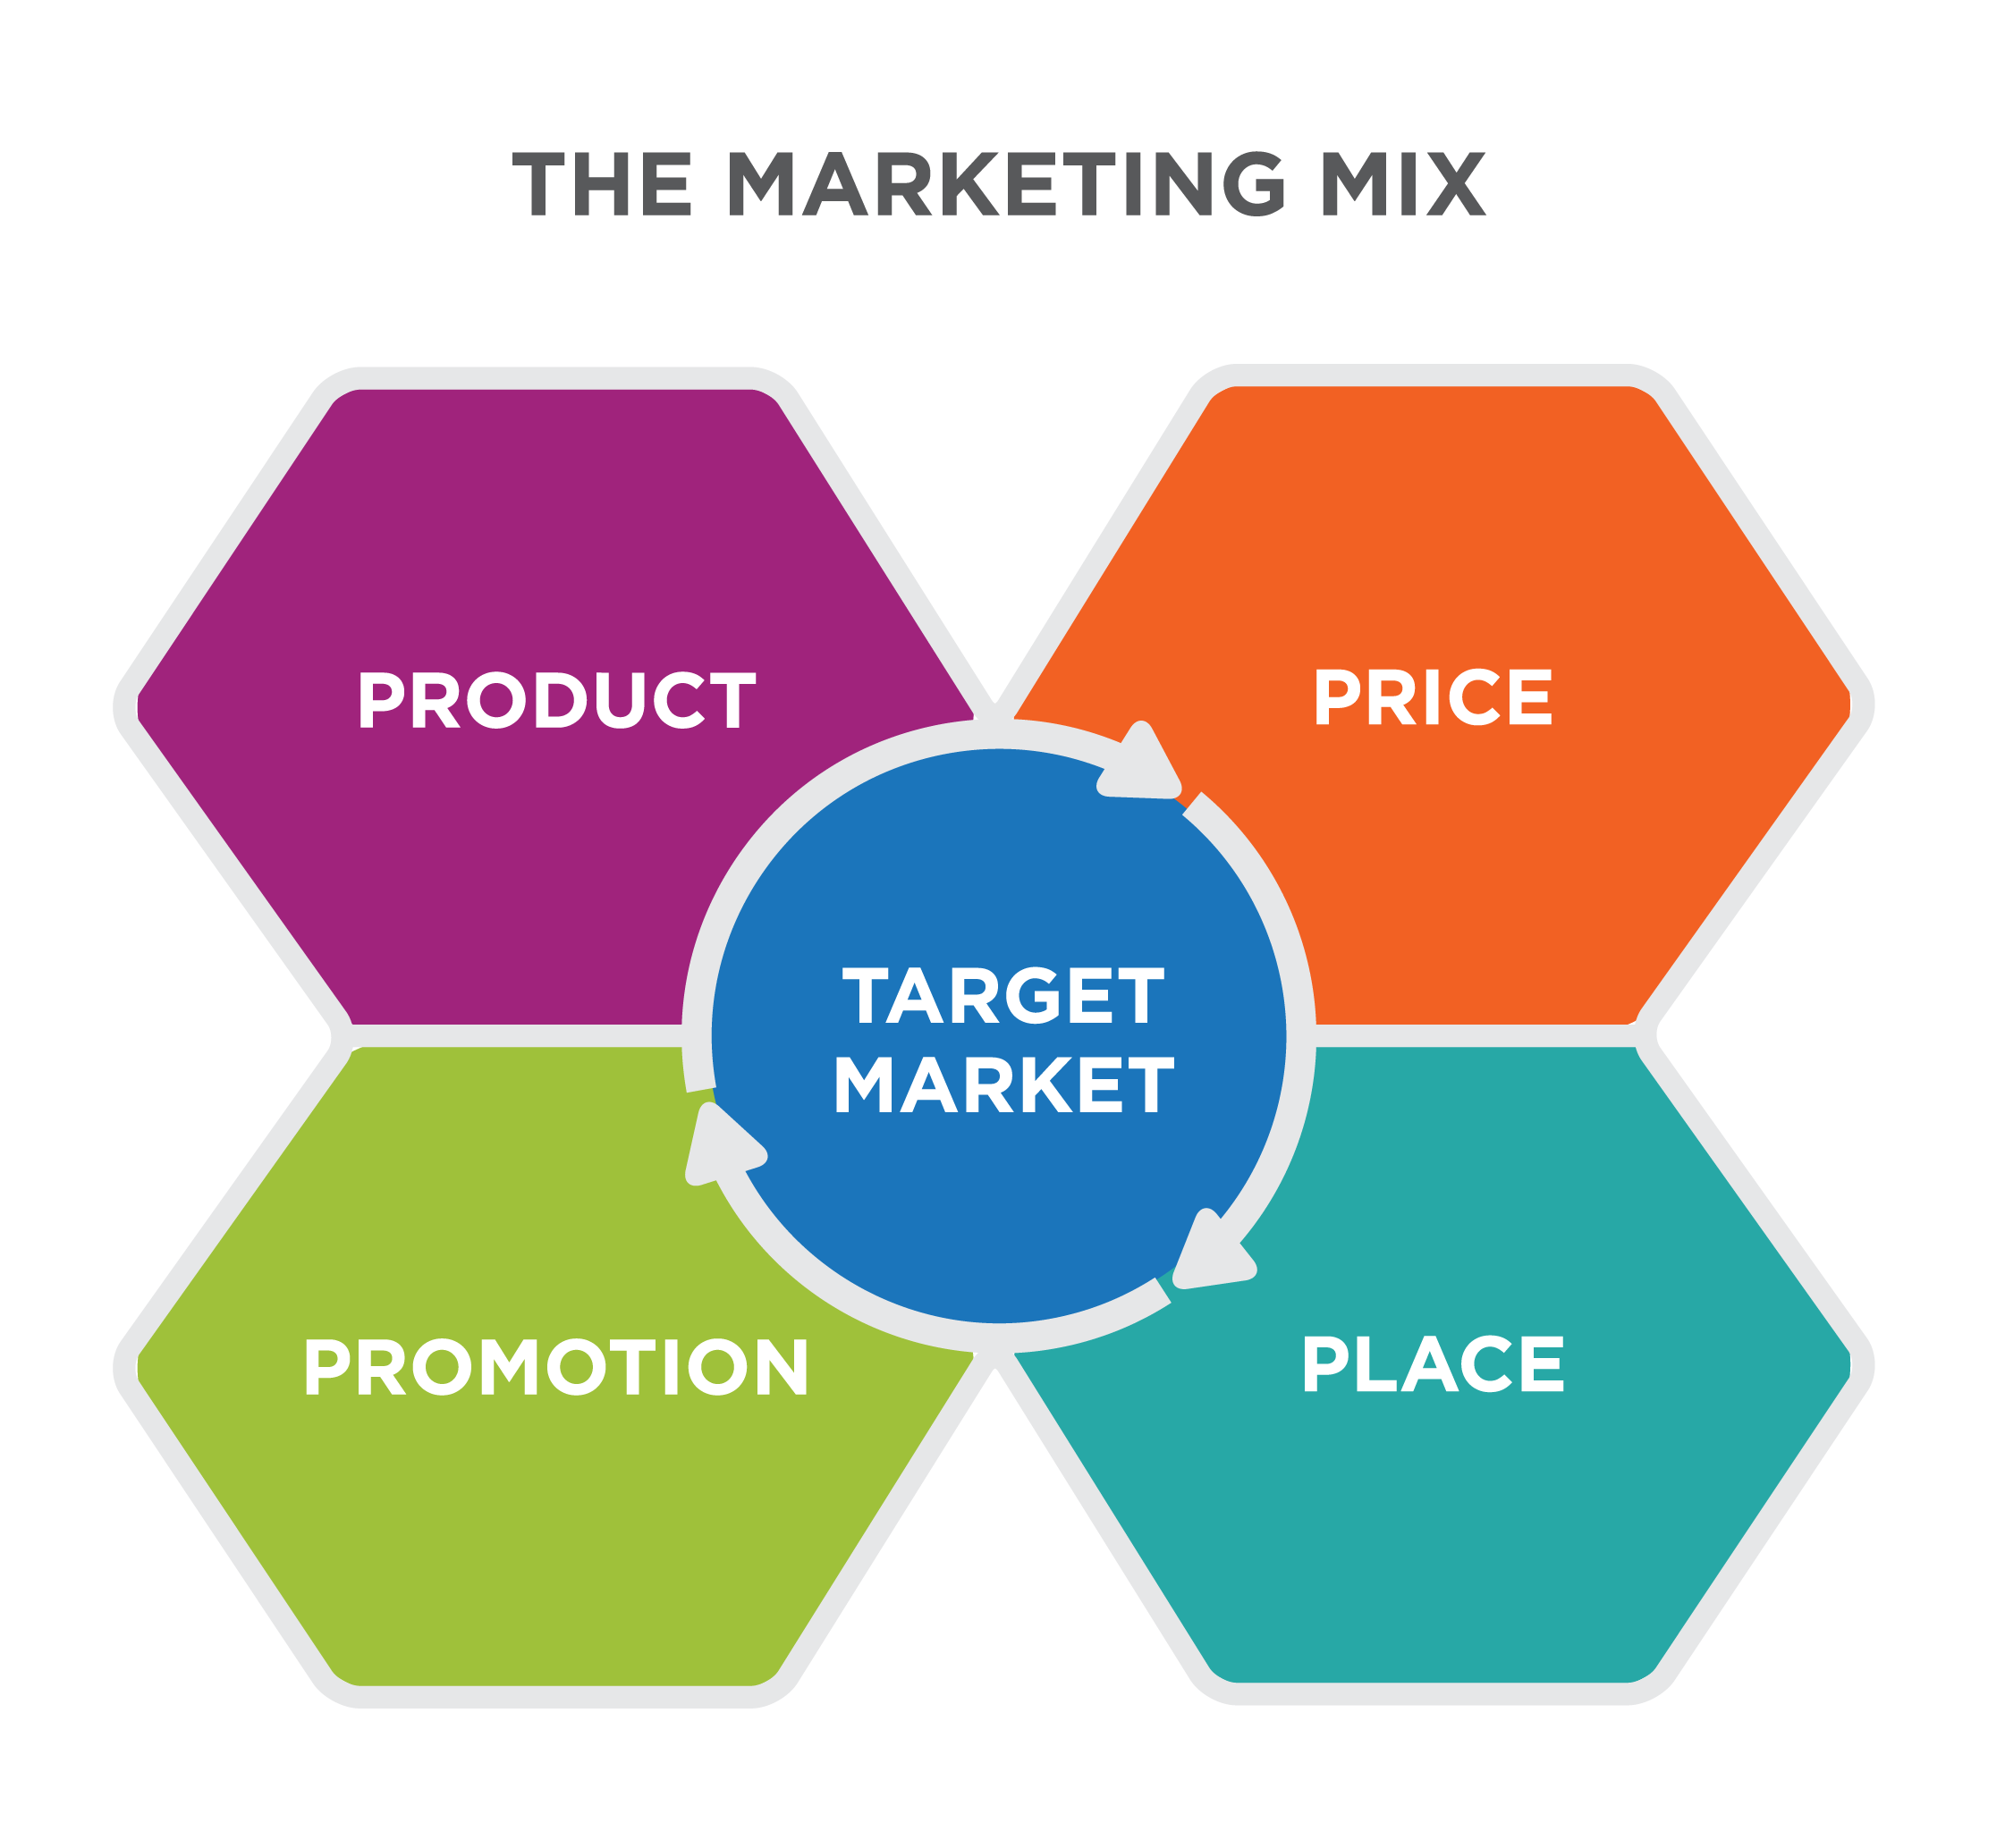 marketing mix strategies Ii a descriptive study of the marketing mix strategies utilized by north american christian schools by david d horner, jr approved: committee chair _____.